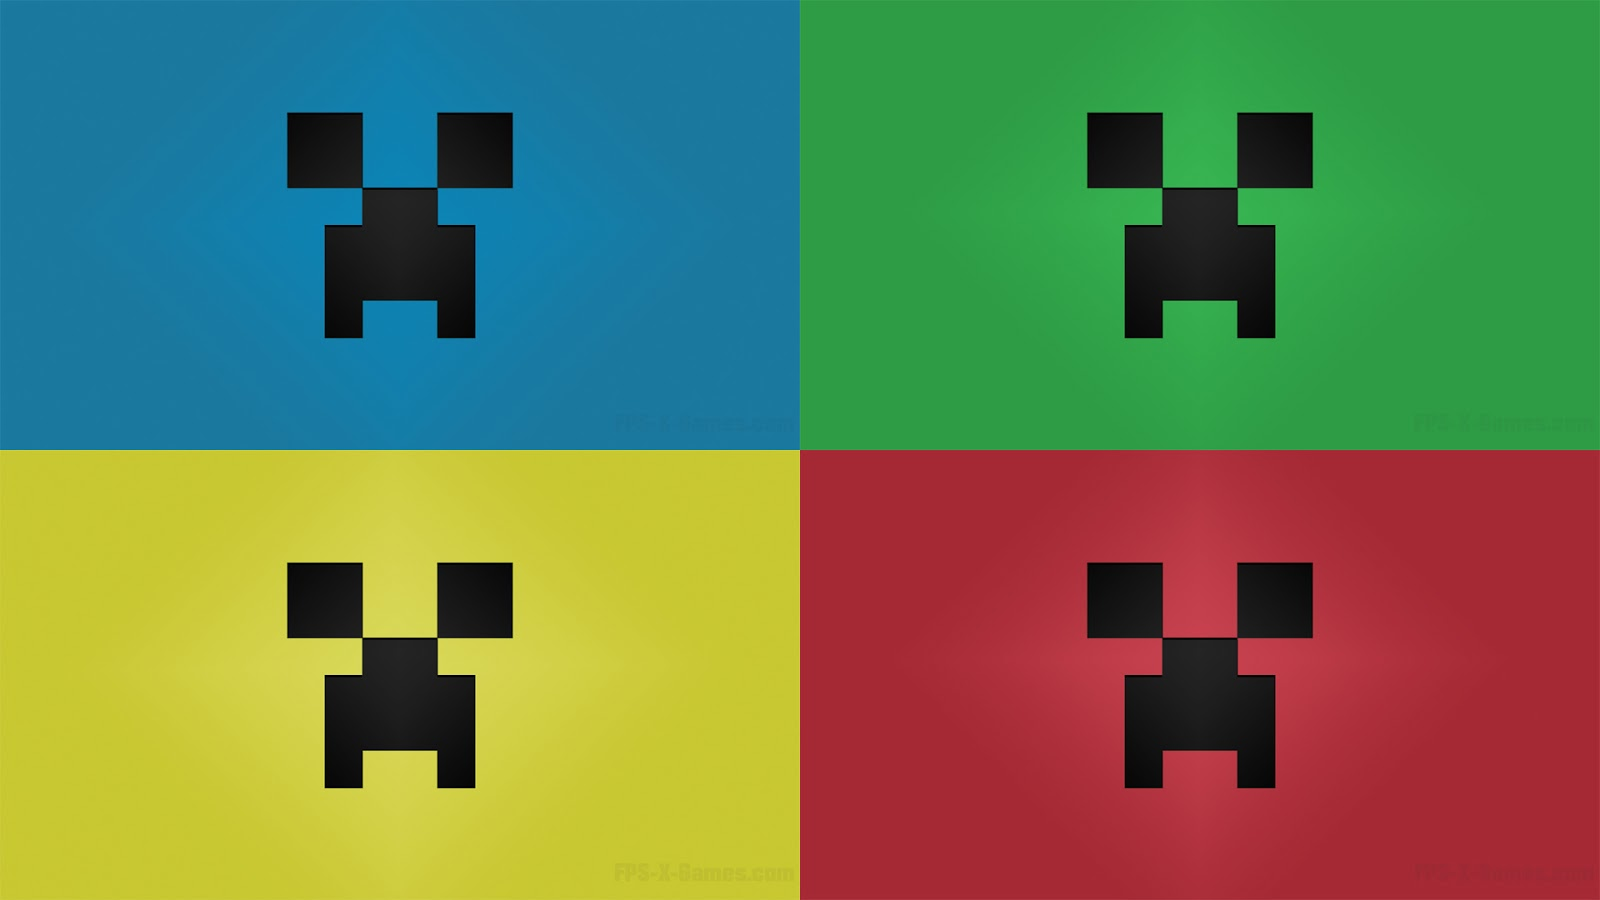 Cool Wallpaper Minecraft Desktop - primary-colors-minecraft-creeper-desktop-wallpaper  Pictures_924983.jpg